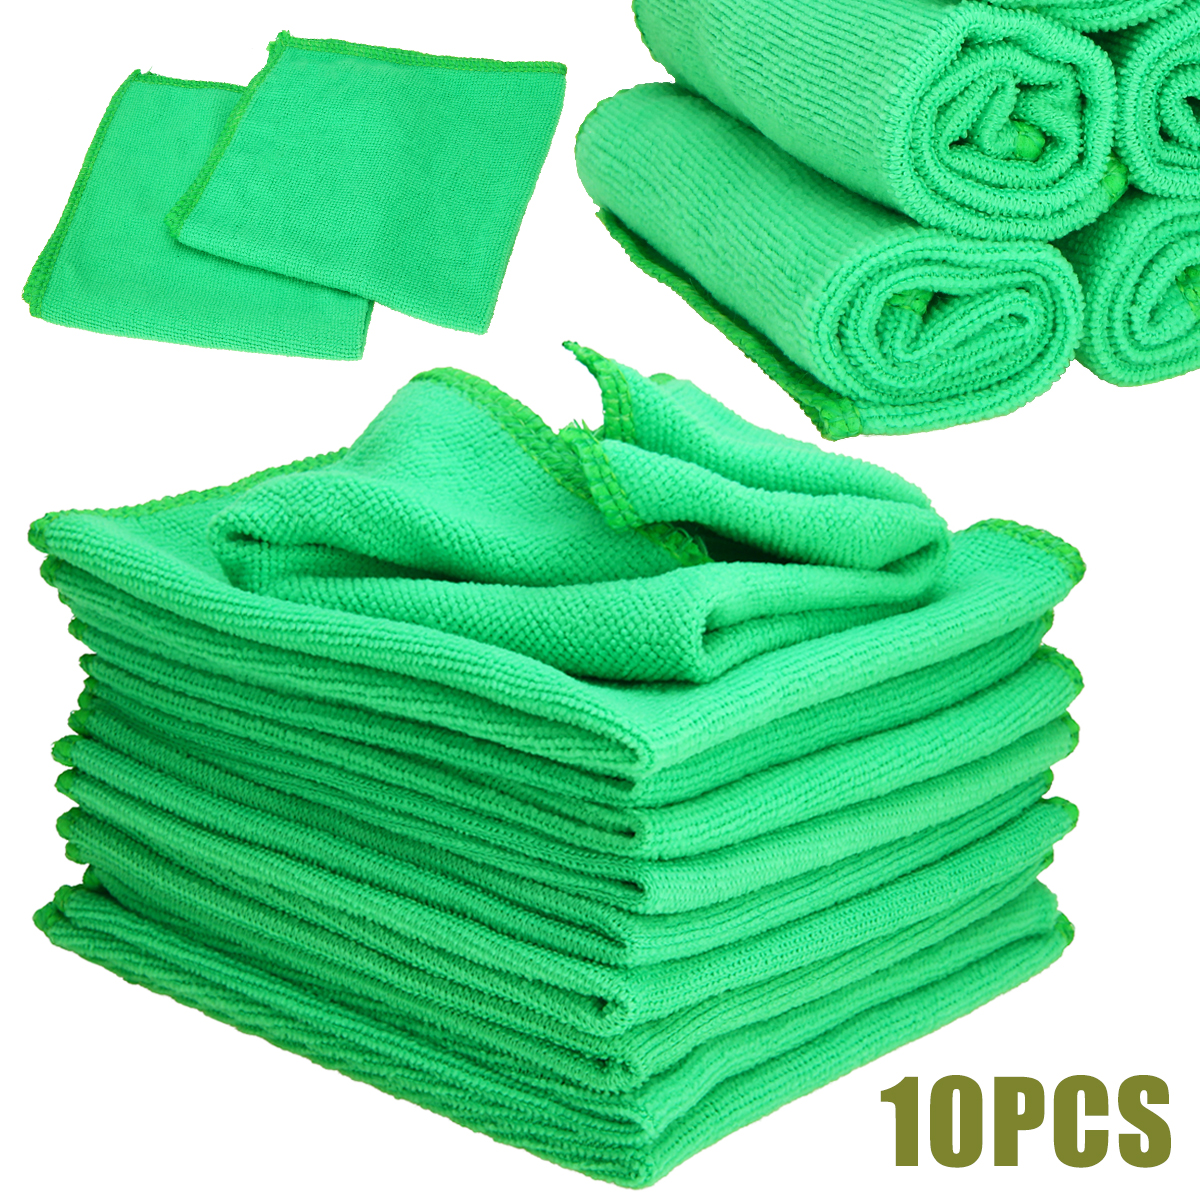 Image 2 - Mayitr 1Set 10X Green Microfiber Cleaning Auto Car Detailing Soft Microfiber Cloths Wash Towel Duster Home Clean 25*25CM-in Sponges, Cloths & Brushes from Automobiles & Motorcycles